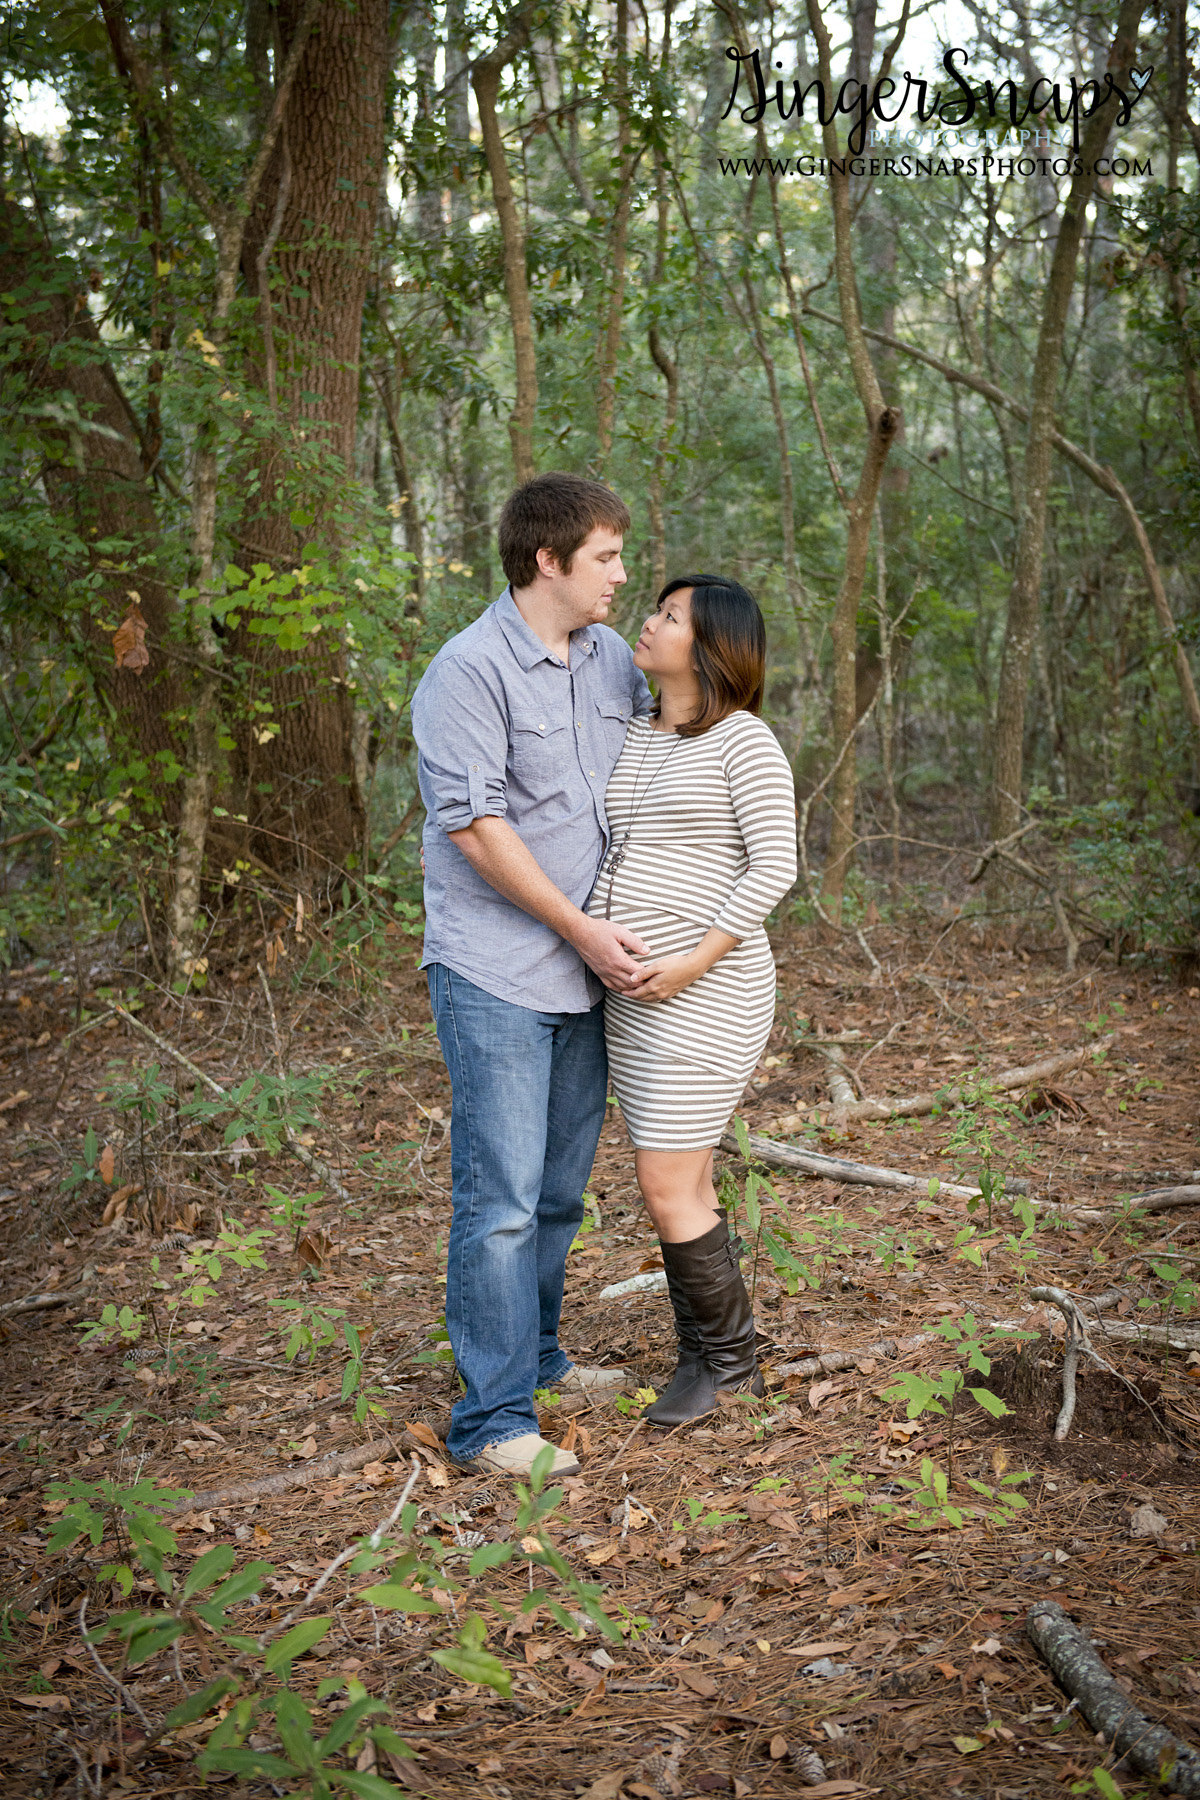 GingerSnaps Photography - 74